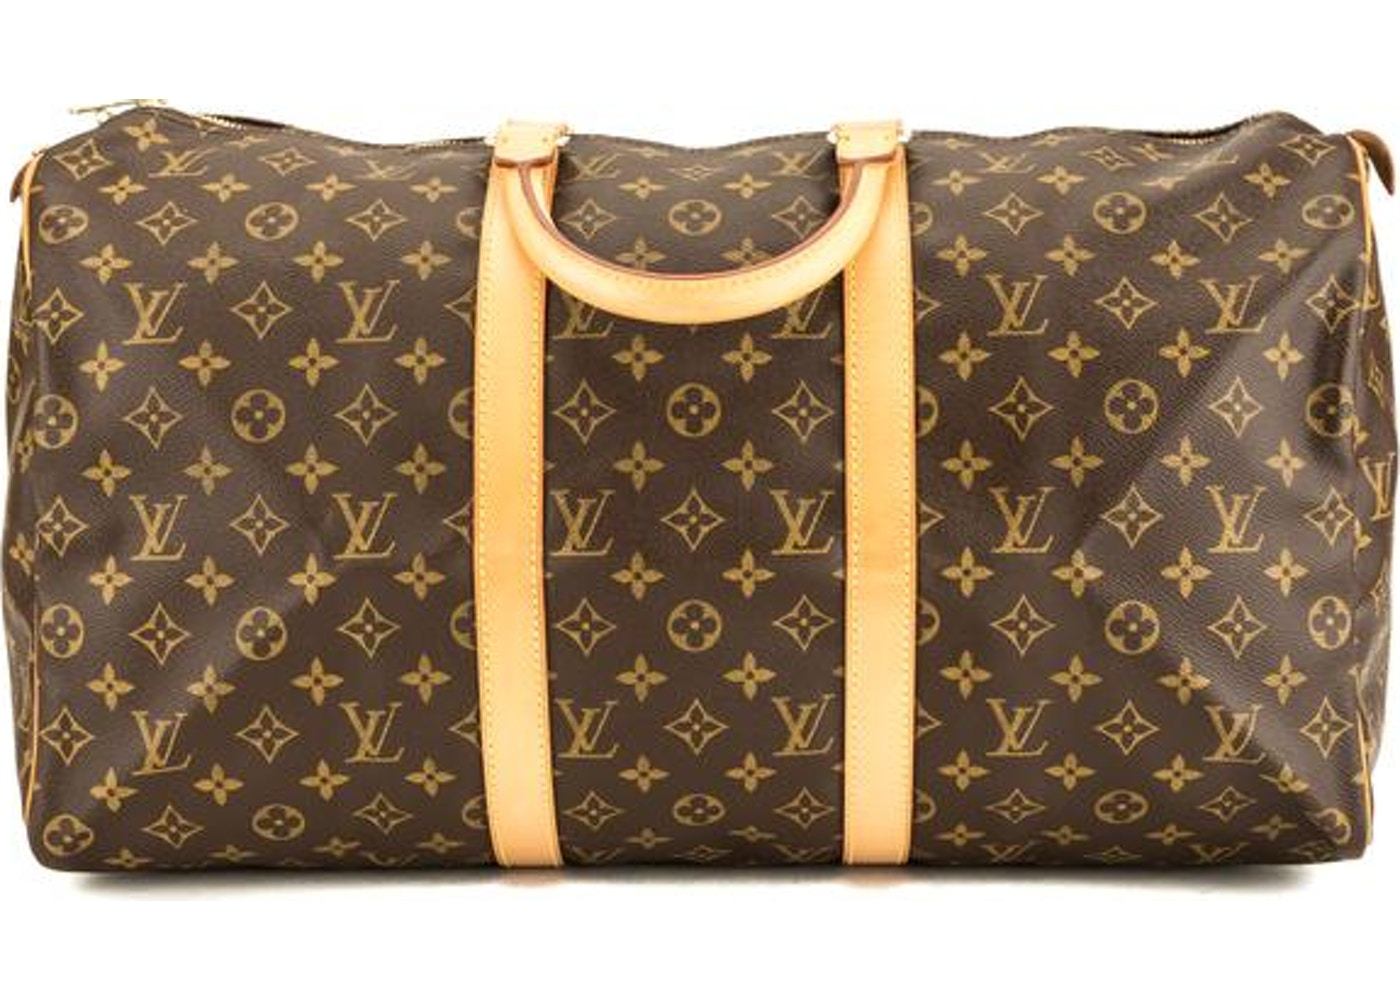 76dffa56883 Louis Vuitton Keepall Monogram (Without Accessories) 50 Brown